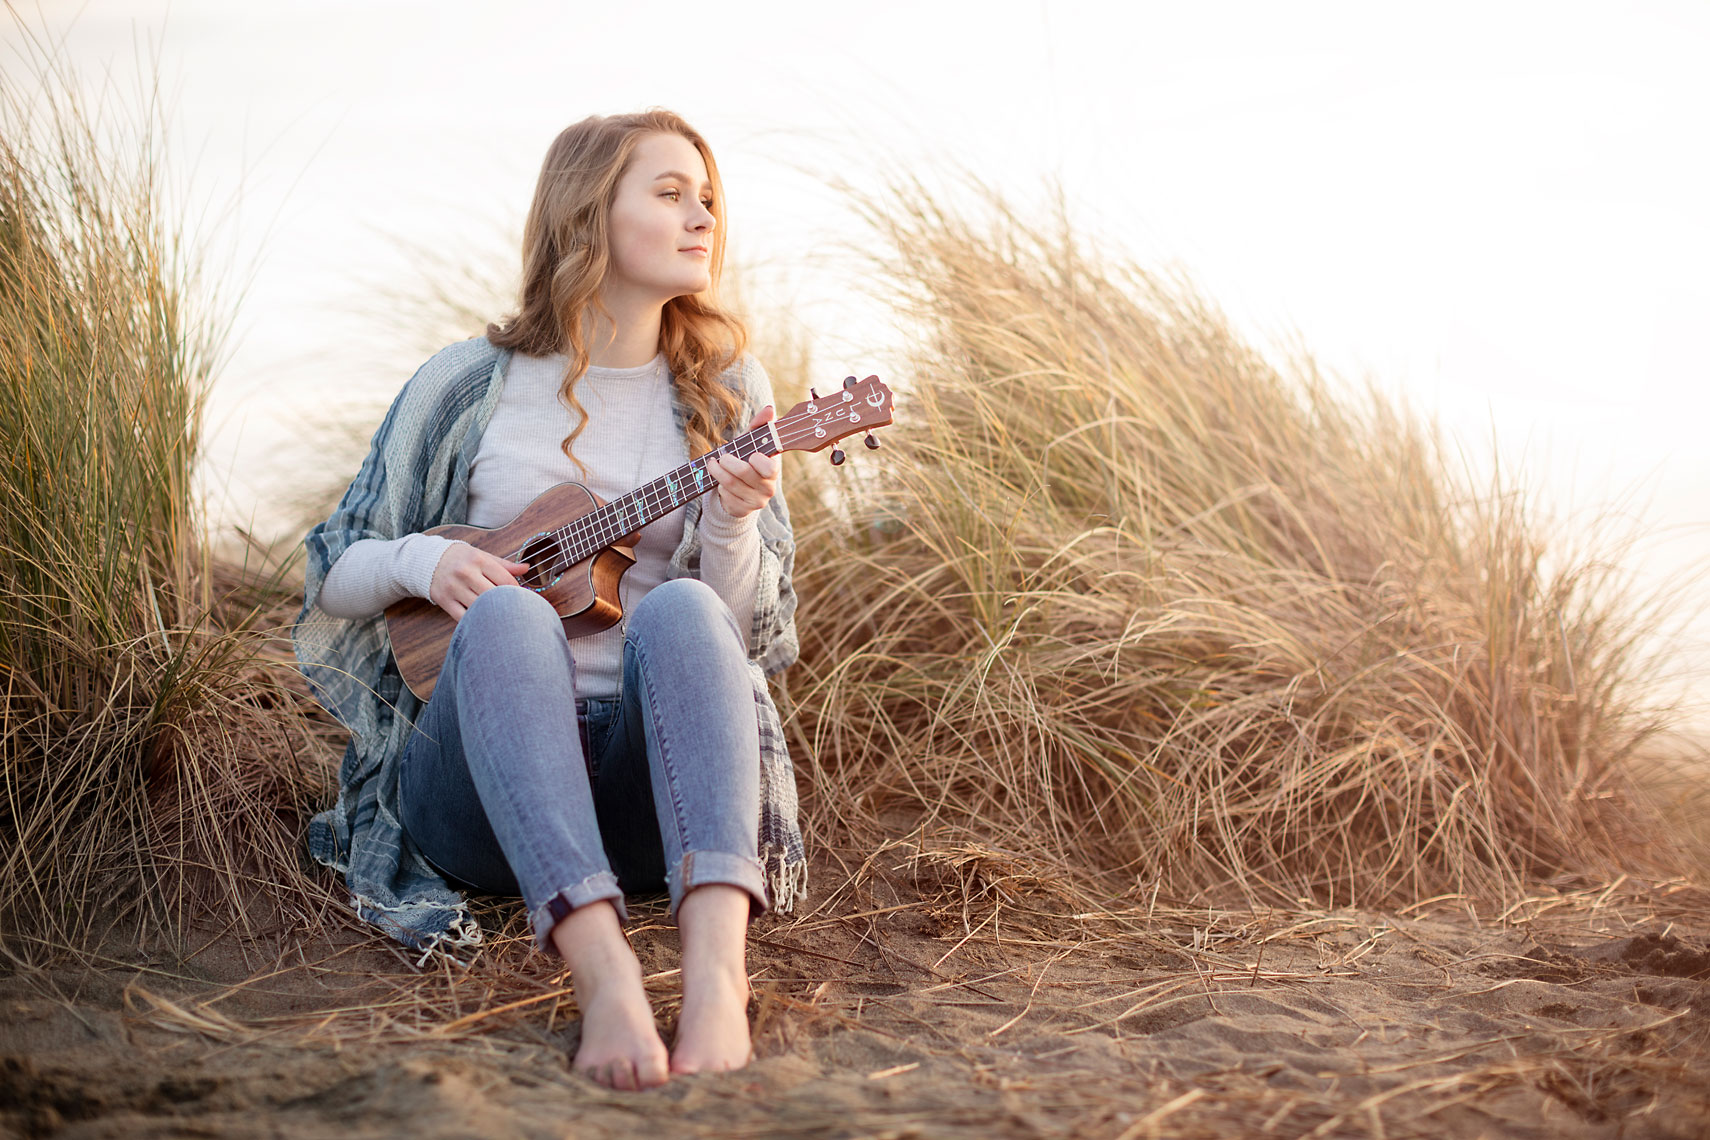 Teen girl playing ukulele in dunes